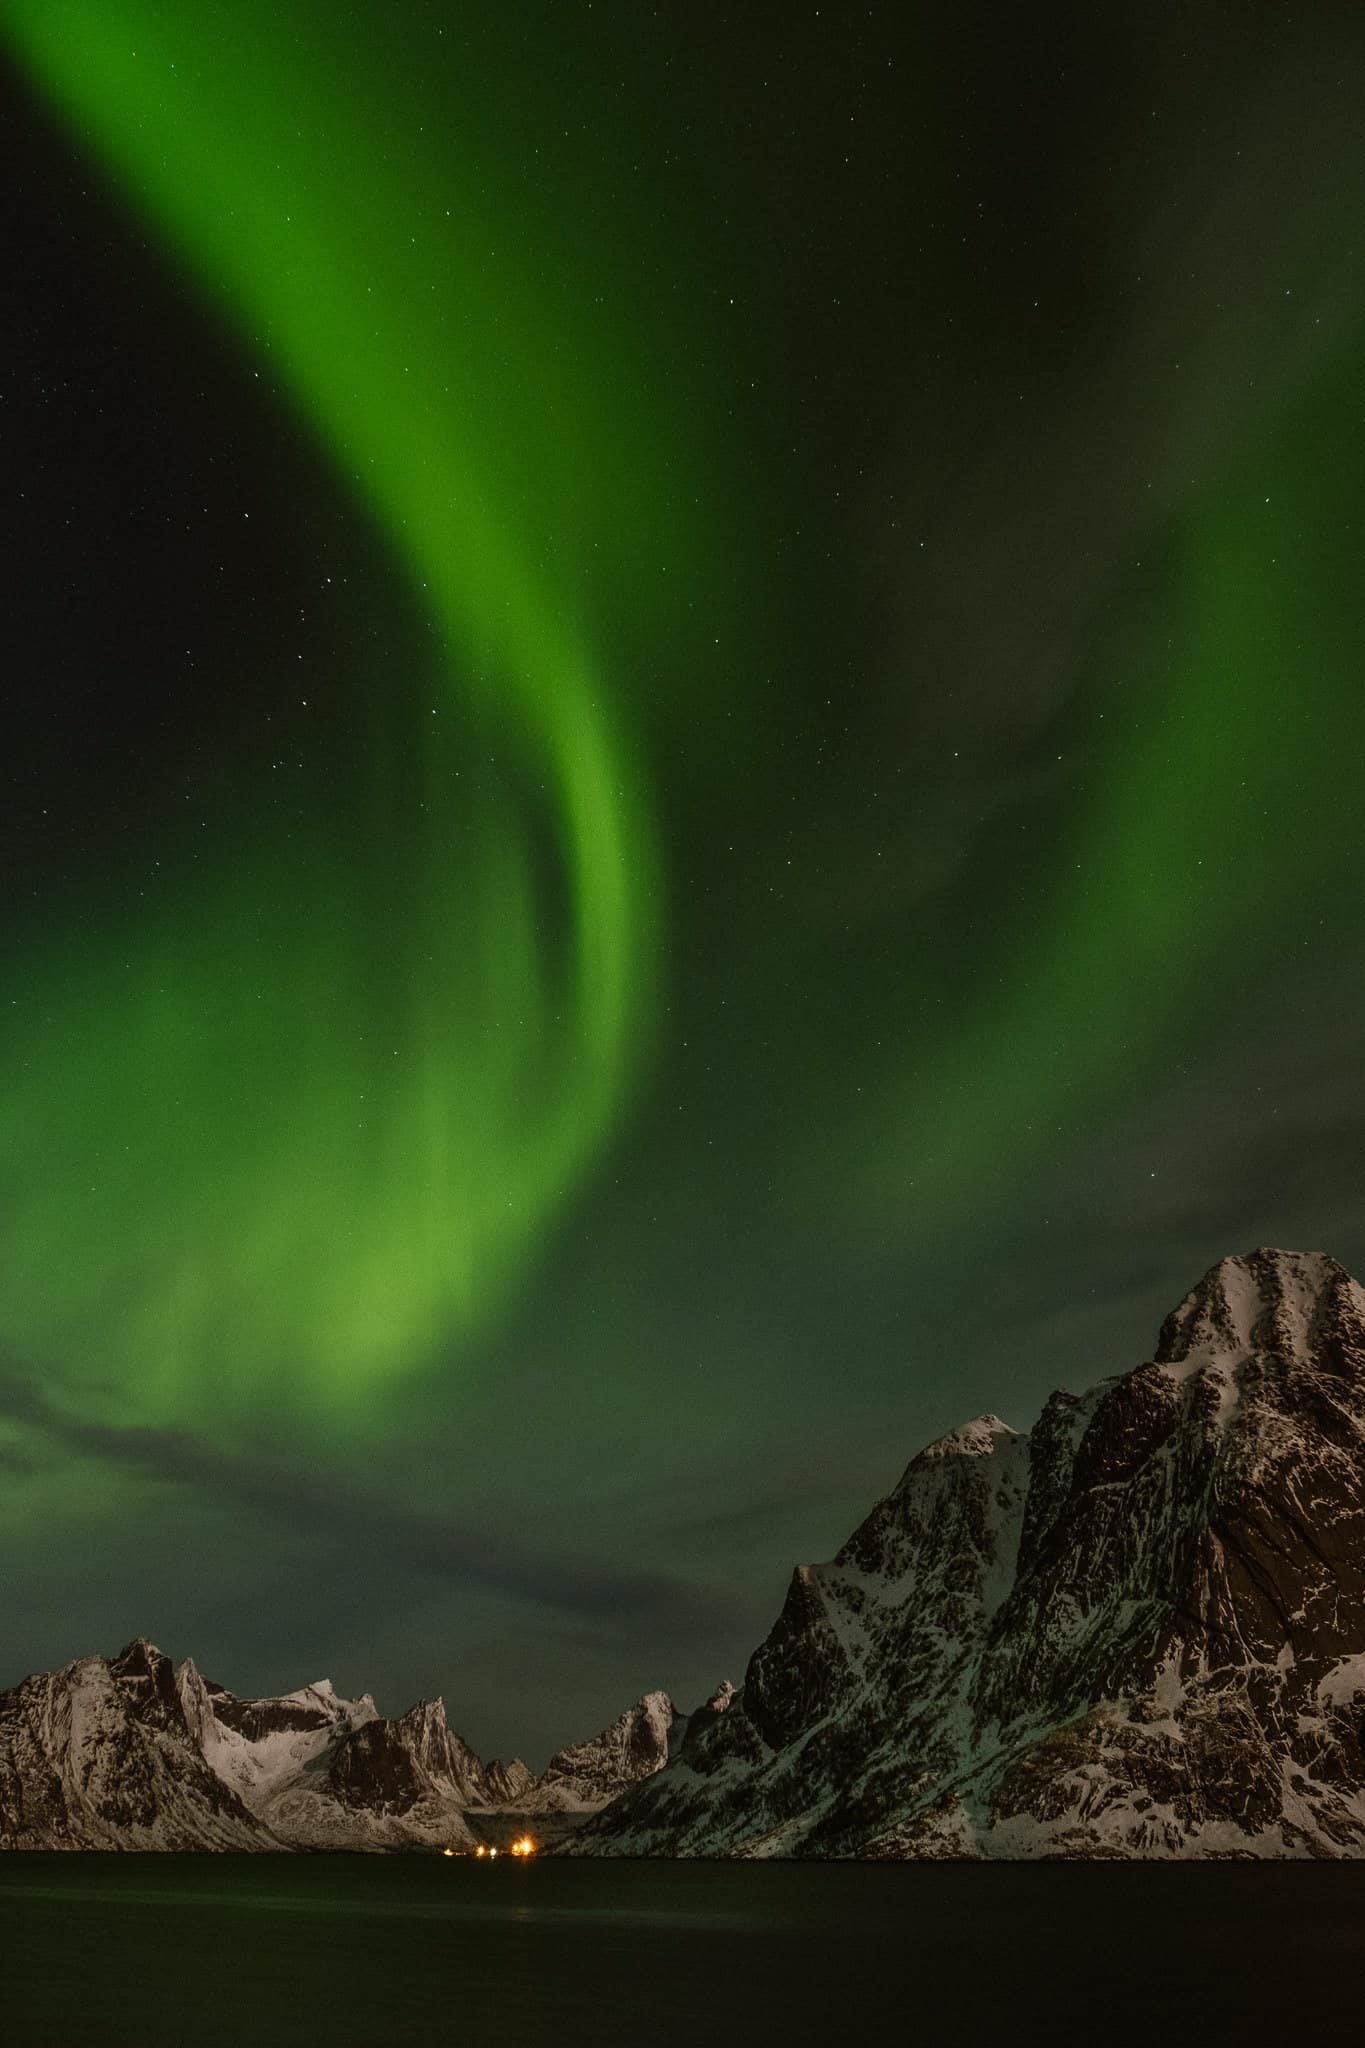 Observing the northern lights which are over a mountain.